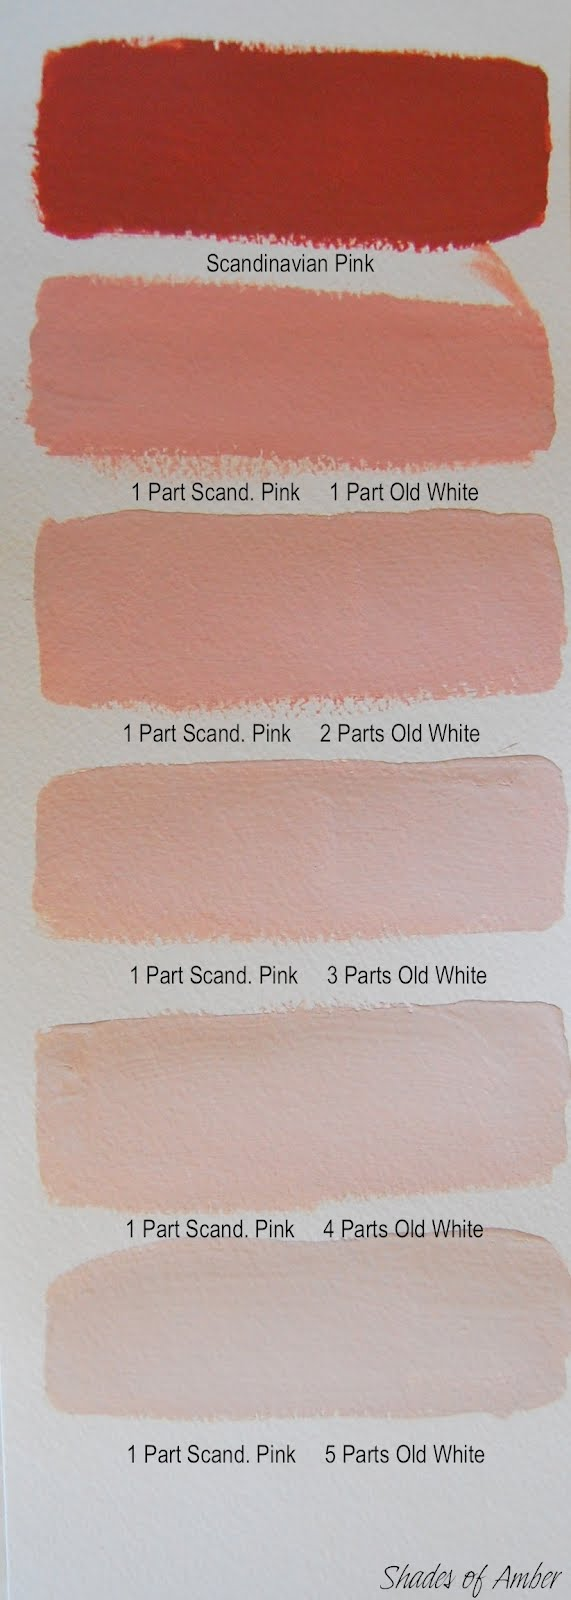 Shades Of Amber Chalk Paint Color Theory Scandinavian Pink